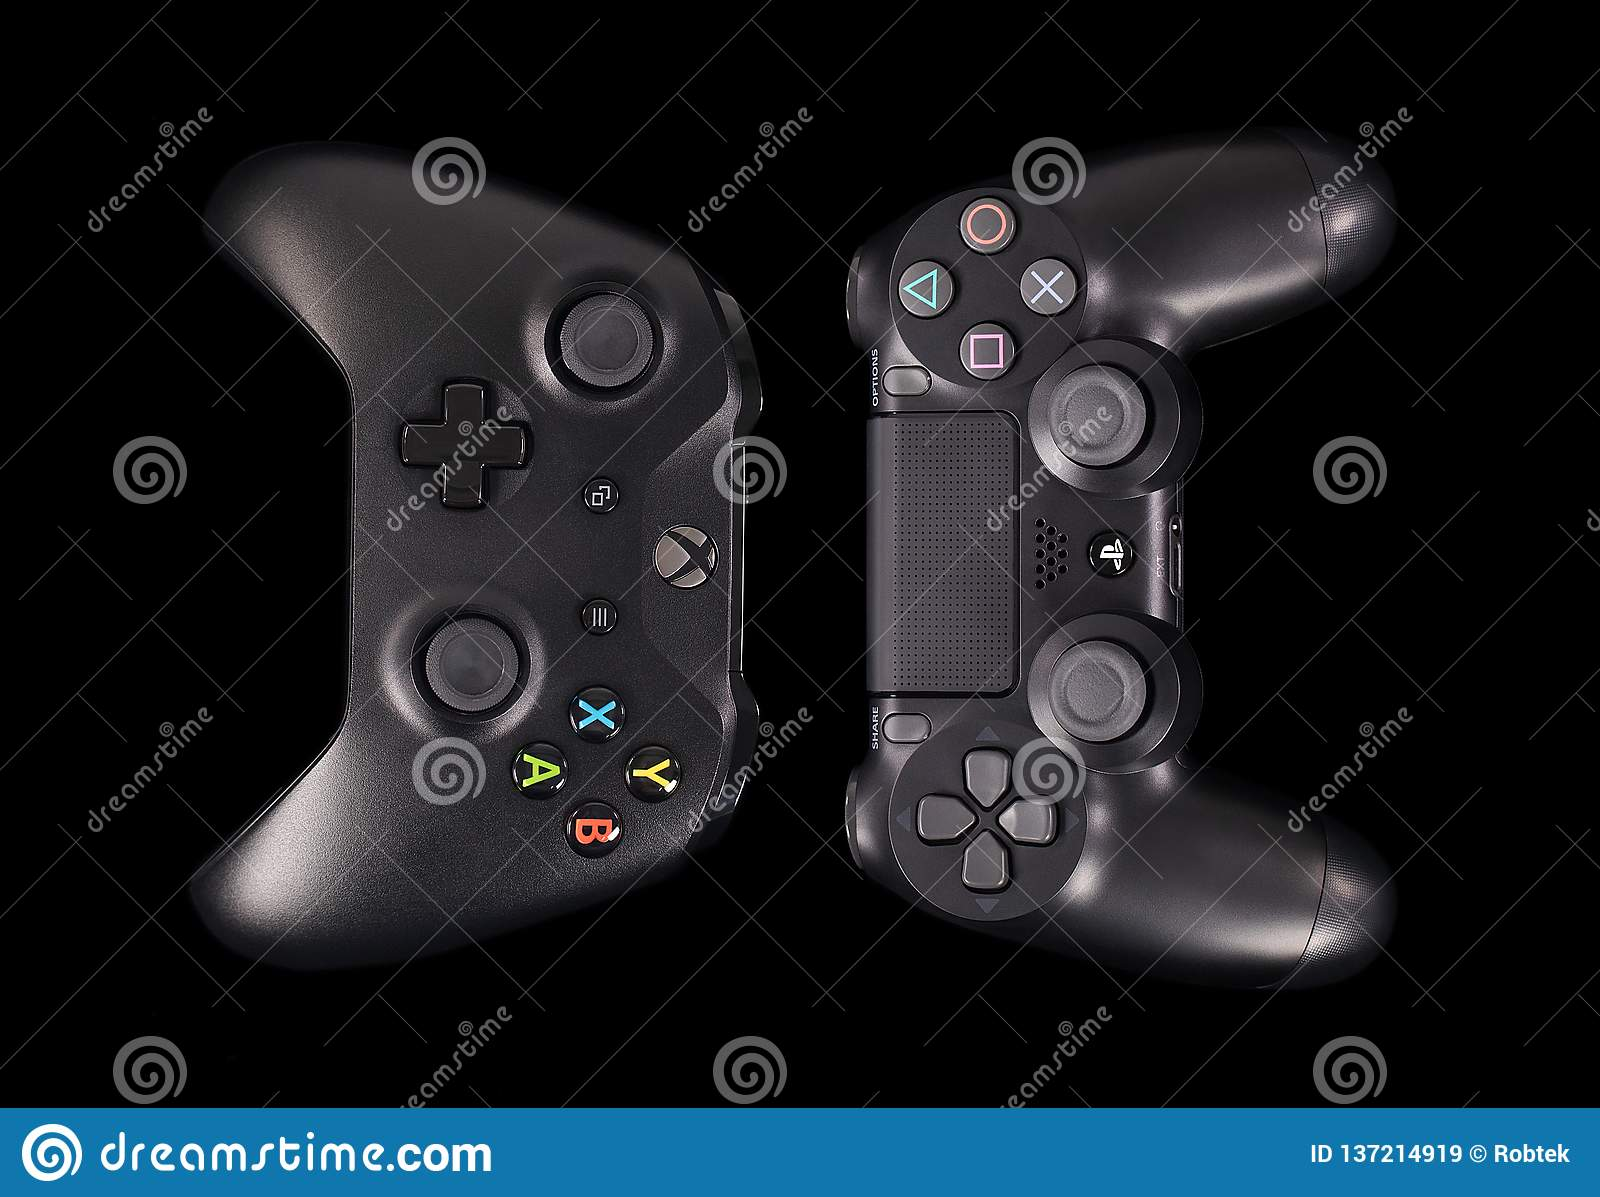 Sony PS4 Controller And Microsoft XBOX One Controller